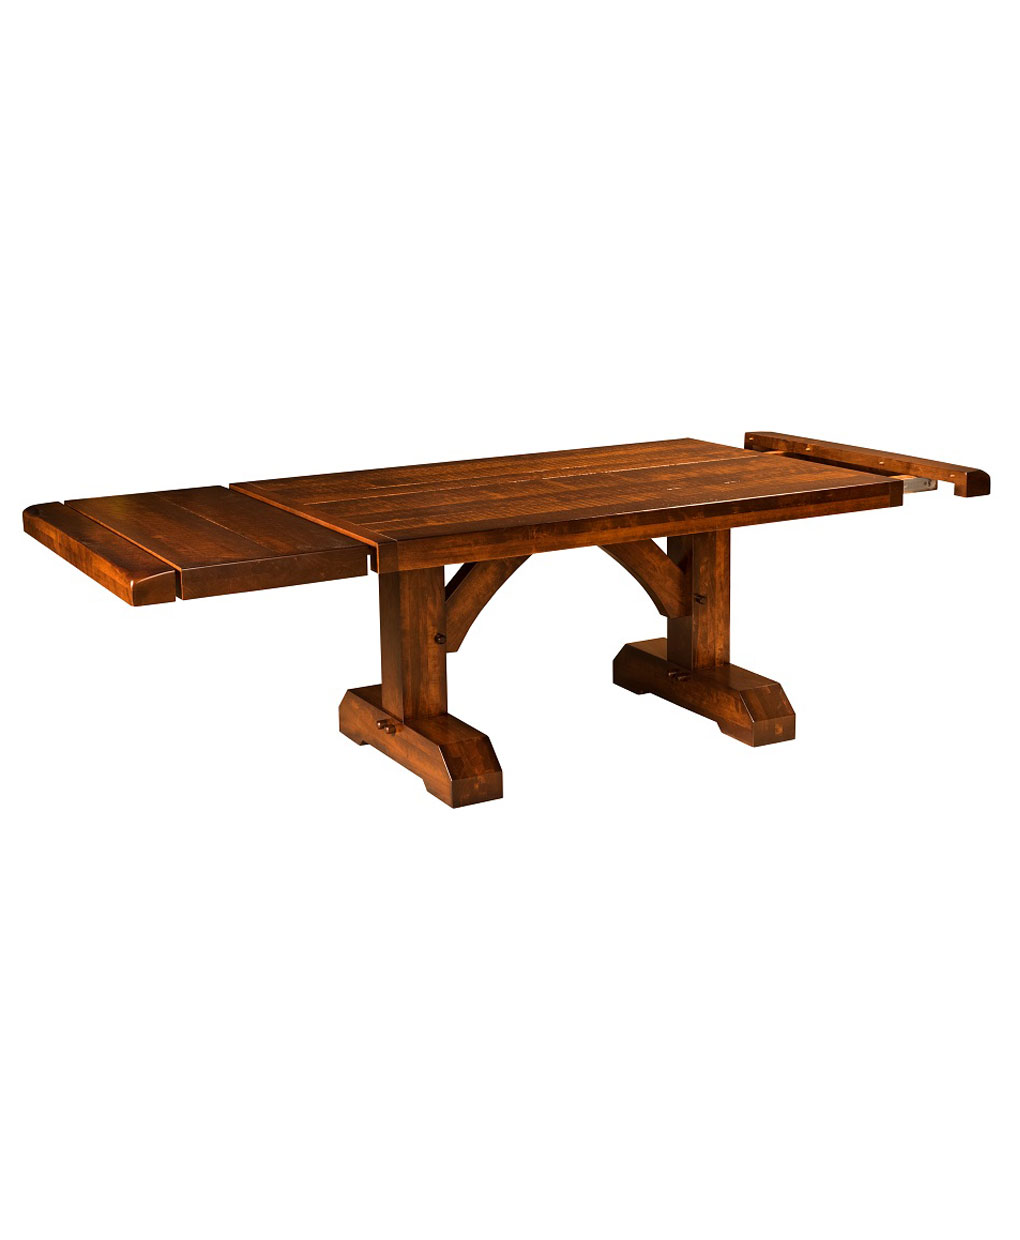 reagan-trestle-table-leaves